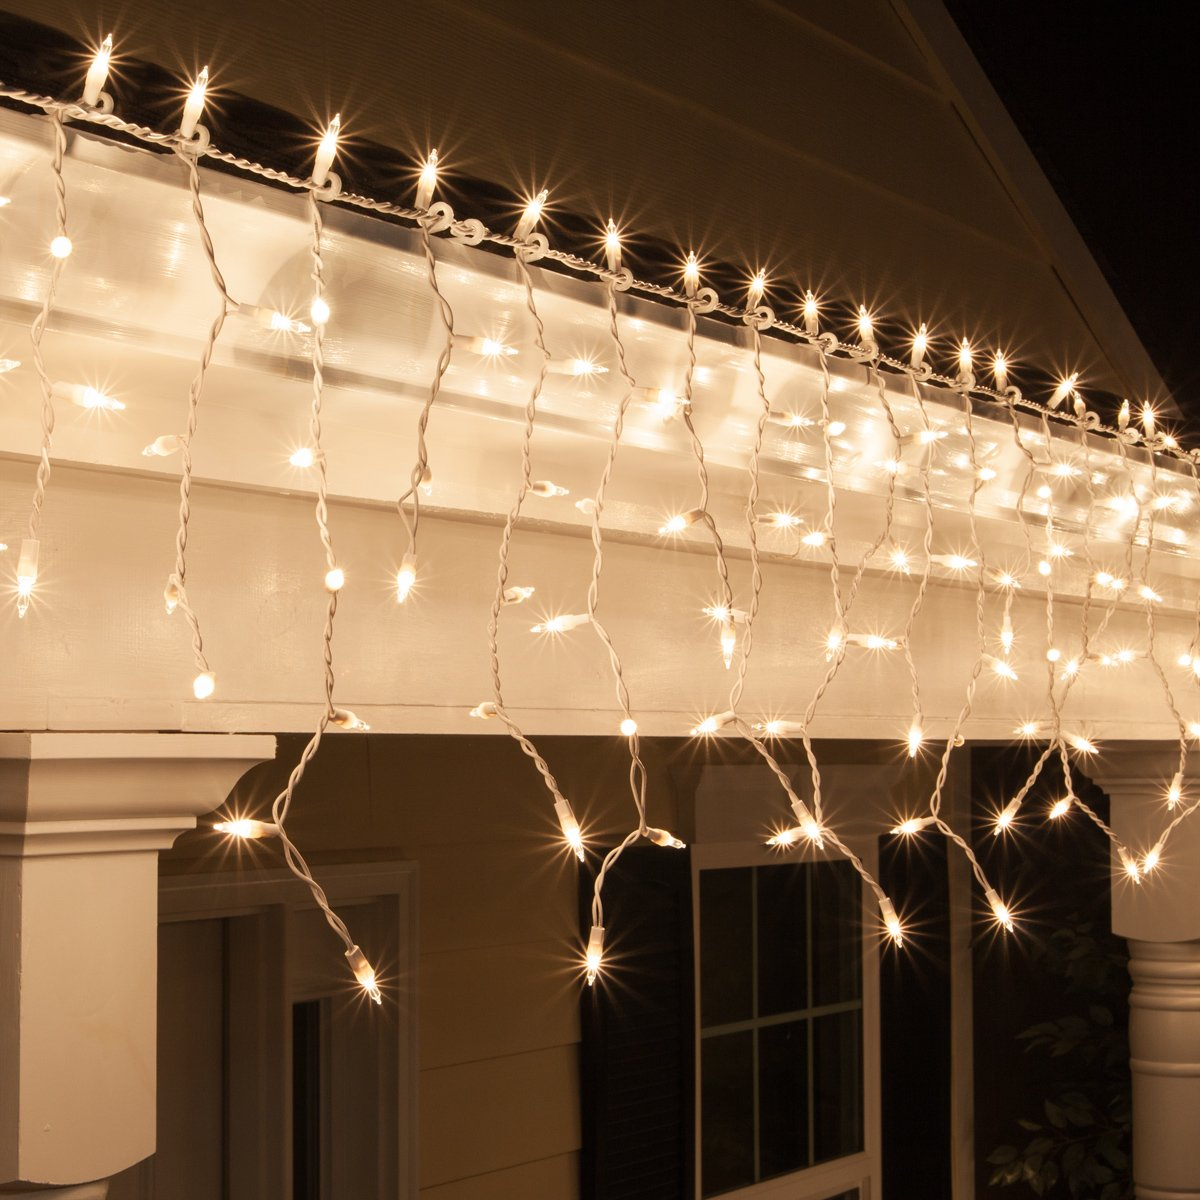 Amazon kringle traditions 9 ft 150 clear icicle lights with amazon kringle traditions 9 ft 150 clear icicle lights with long drops white wire indooroutdoor christmas lights outdoor holiday icicle lights aloadofball Choice Image